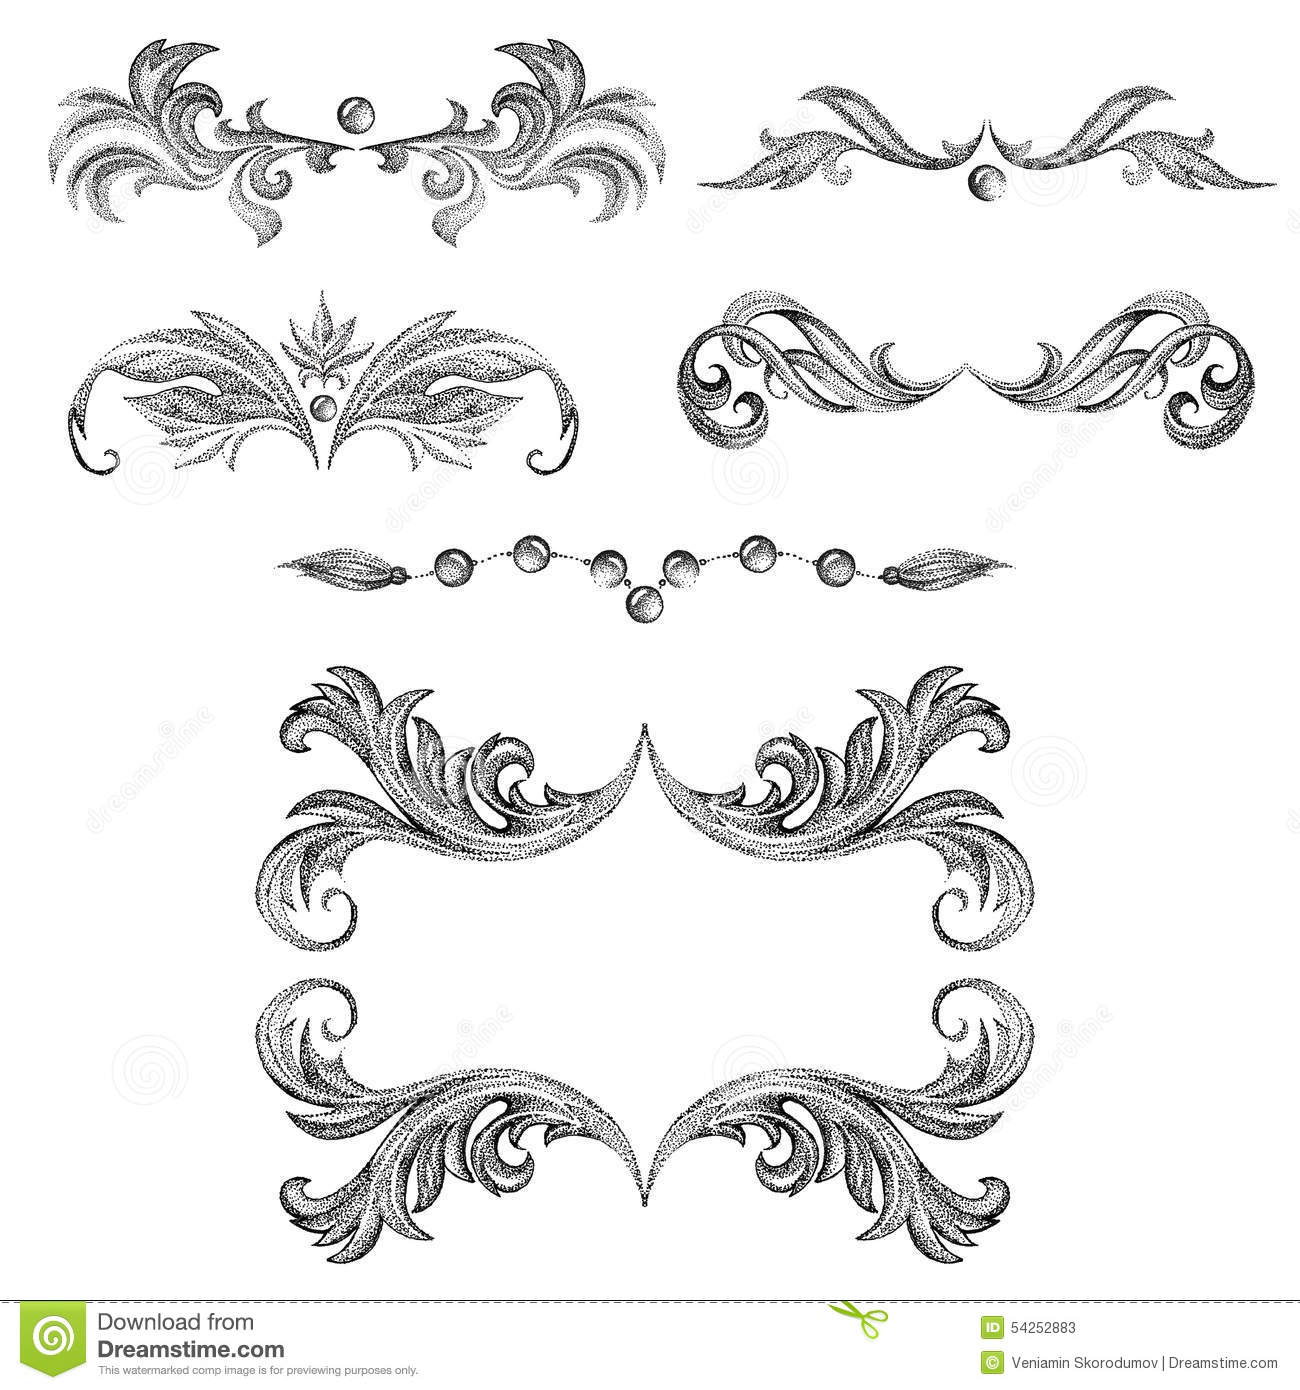 A set of decorative frames and design elements floral ornaments a set of decorative frames and design elements floral ornaments collection page junglespirit